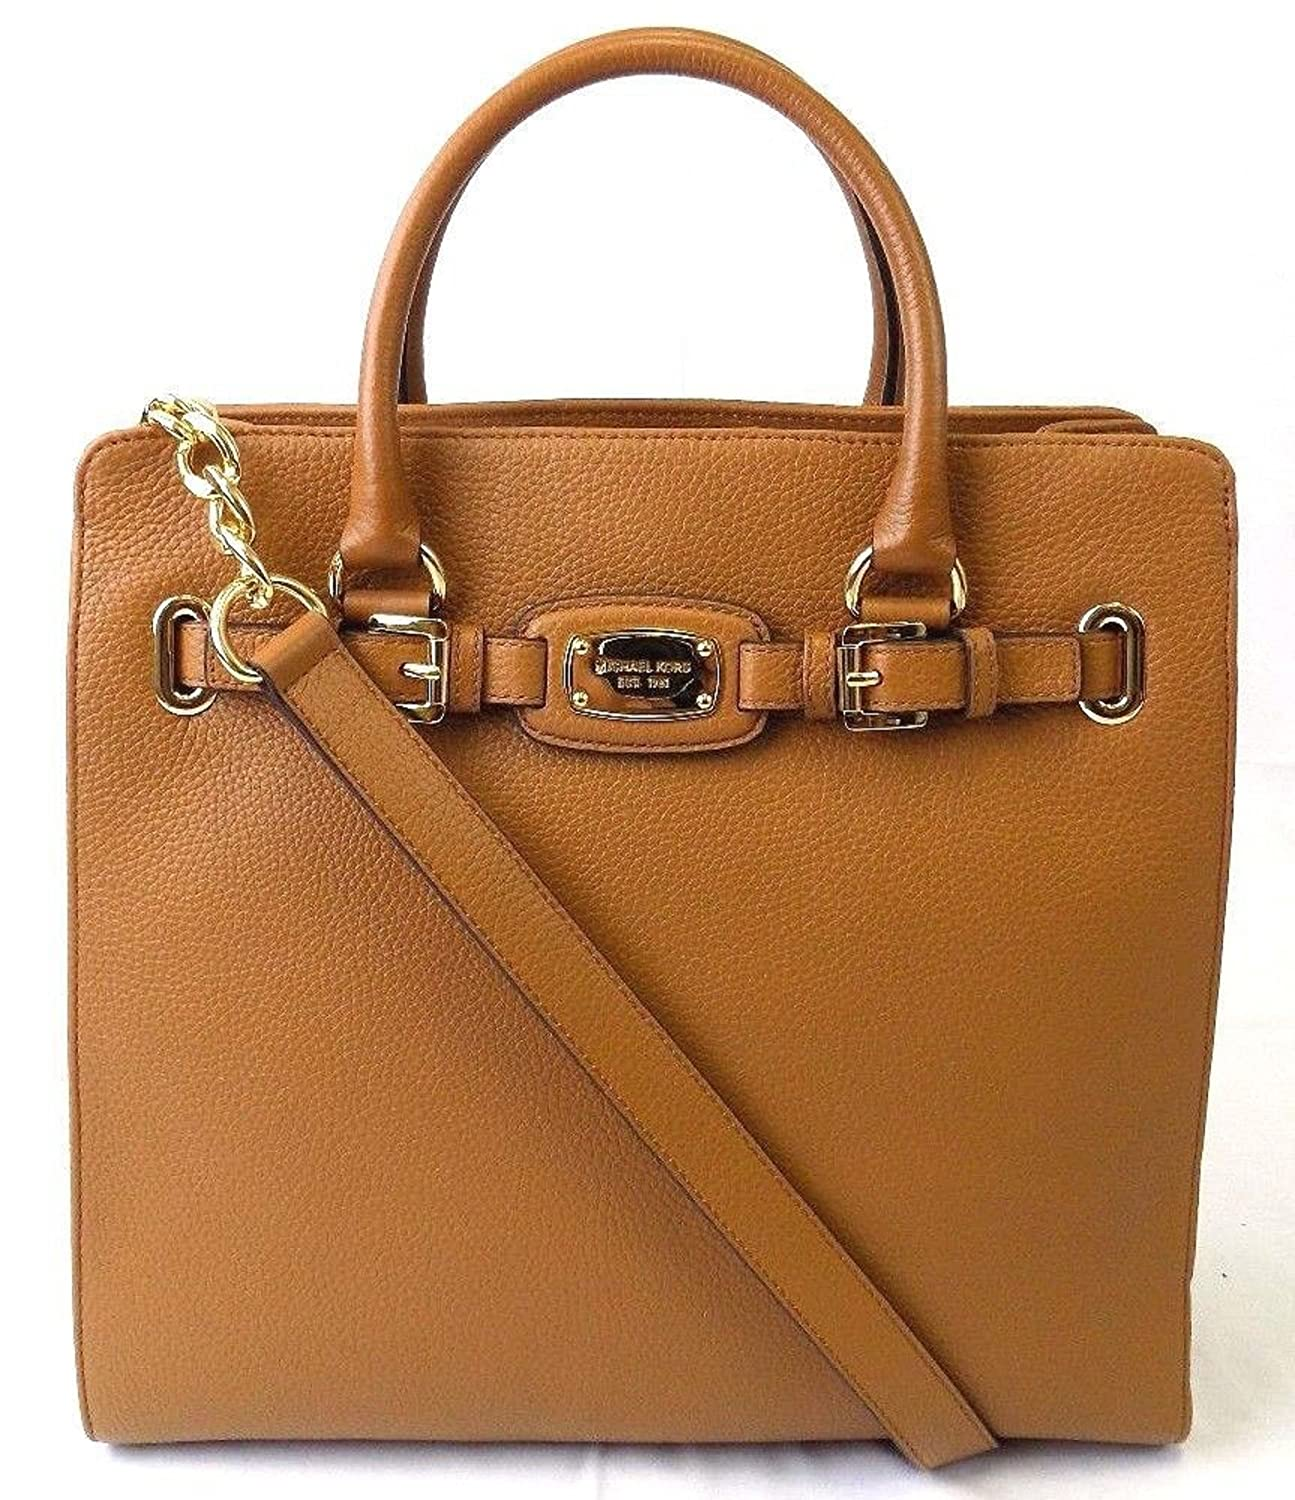 9caf44201a Amazon.com  MICHAEL KORS HAMILTON LARGE NS NORTH SOUTH TOTE ACORN LEATHER  SHOULDER BAG  Clothing